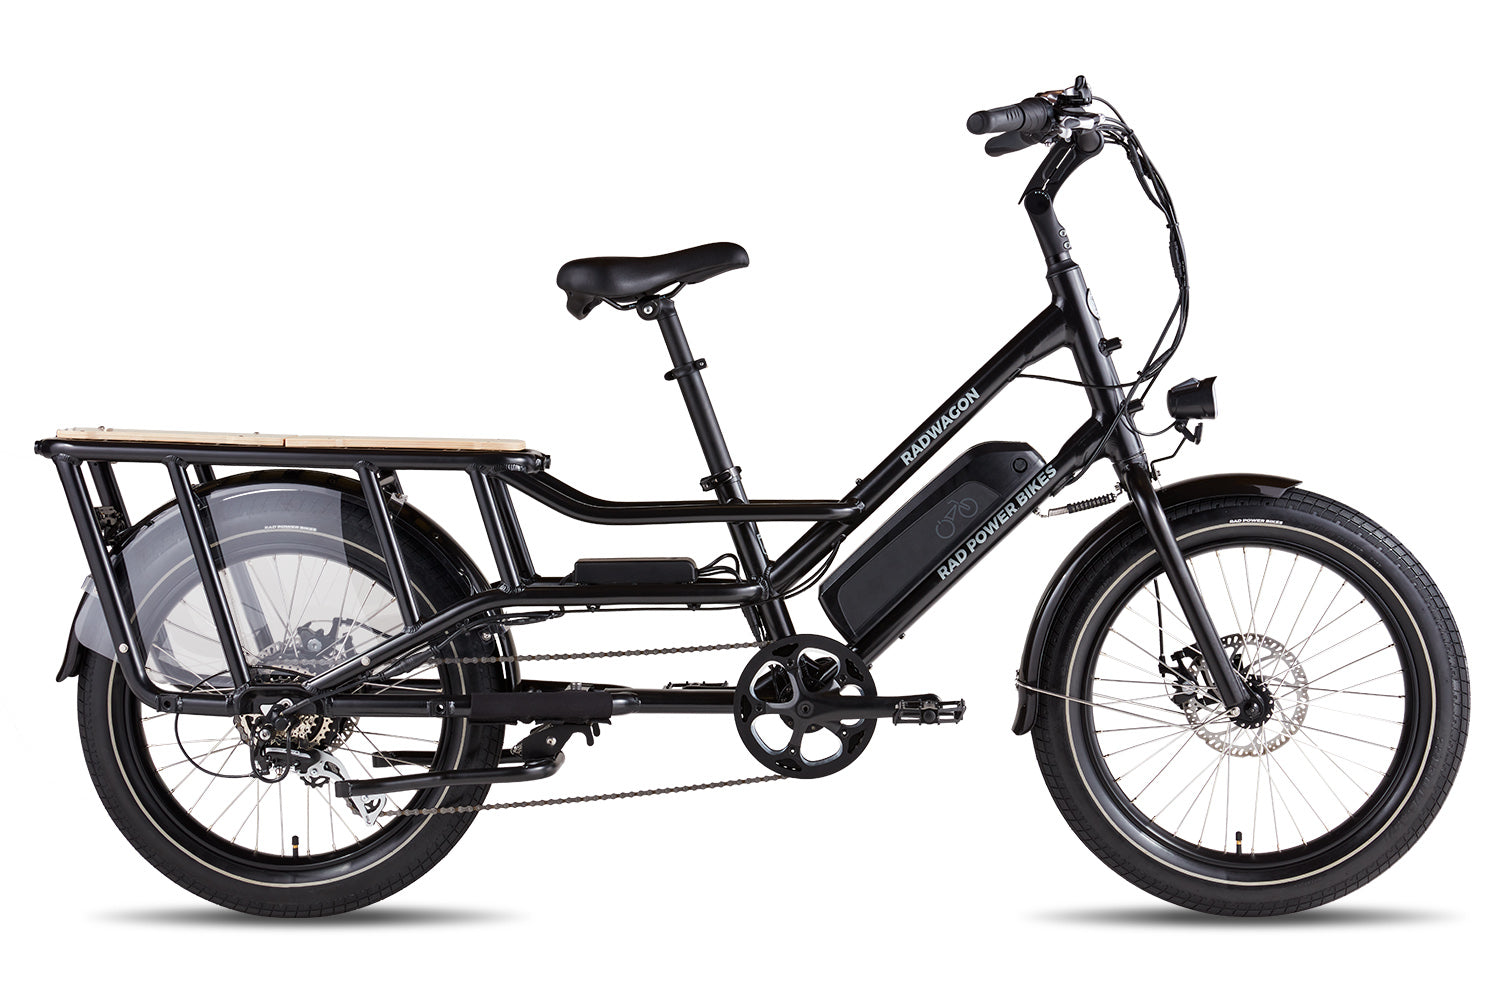 RadWagon 4 Electric Cargo Bike - Black (Limited Edition)